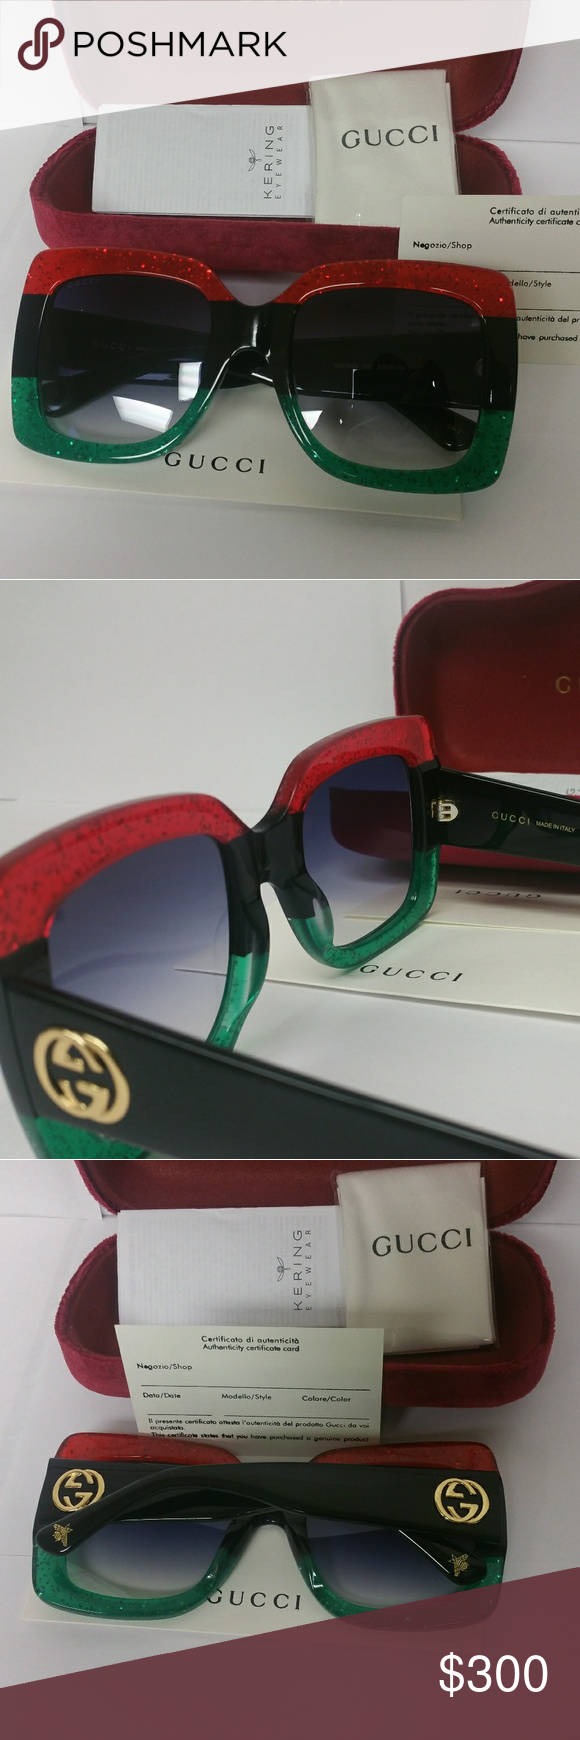 54a542e4fc02 New authentic women oversized Gucci Sunglasses 💯authentic and new. comes  with full package. lens are crystalCrystal Ship out same day. Gucci  Accessories ...